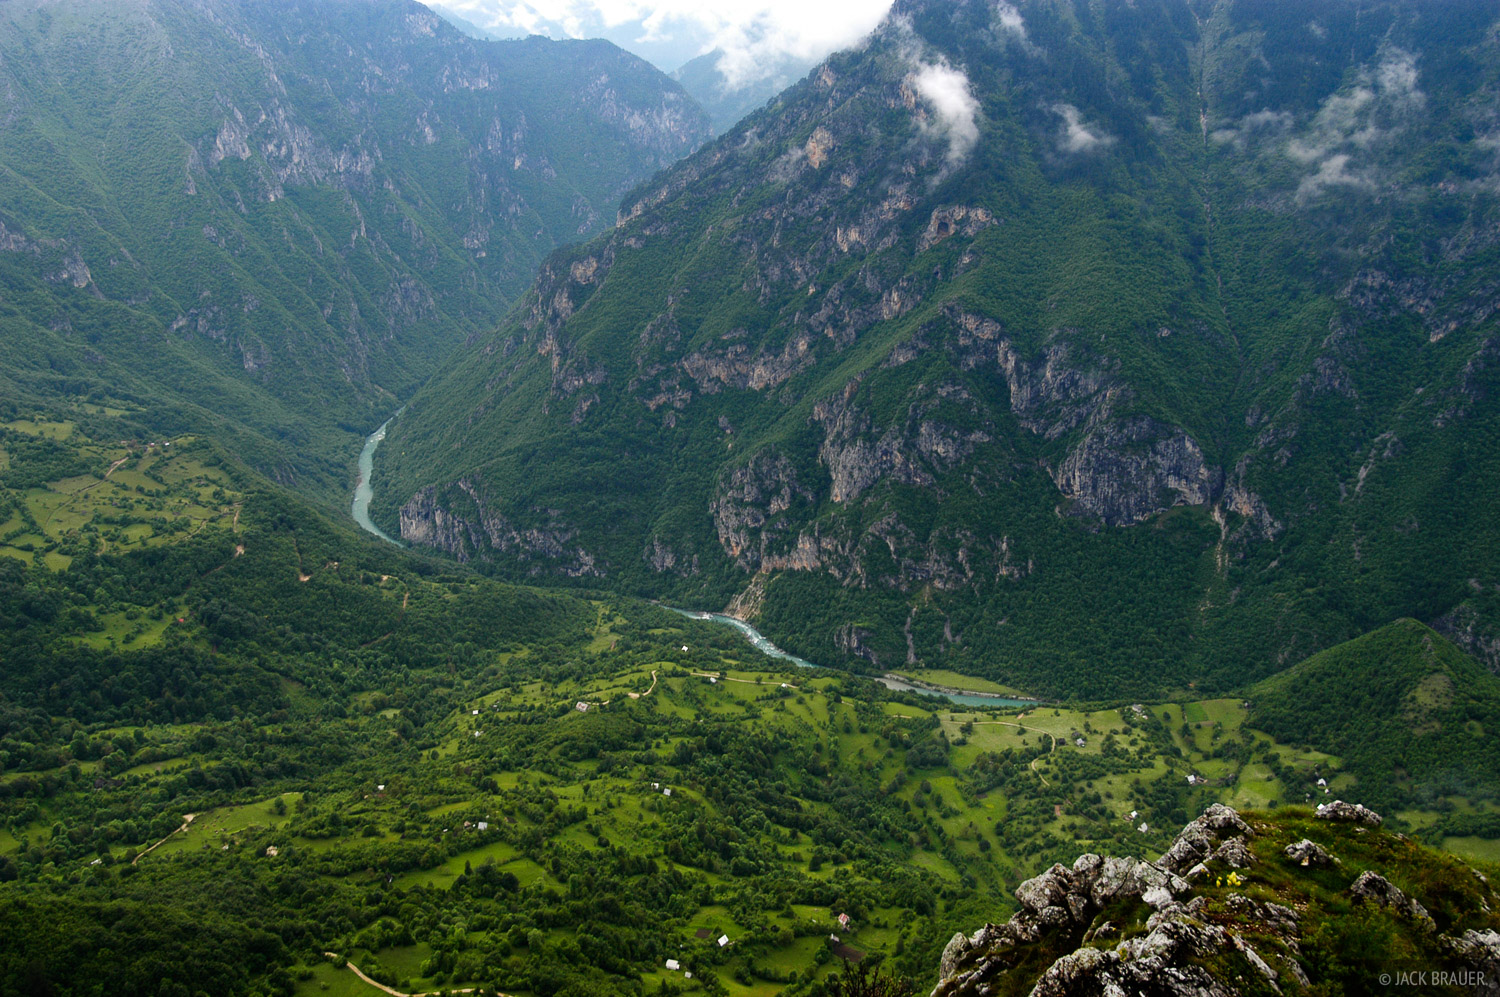 Churevac, Tepca, Tara Canyon, Montenegro, photo